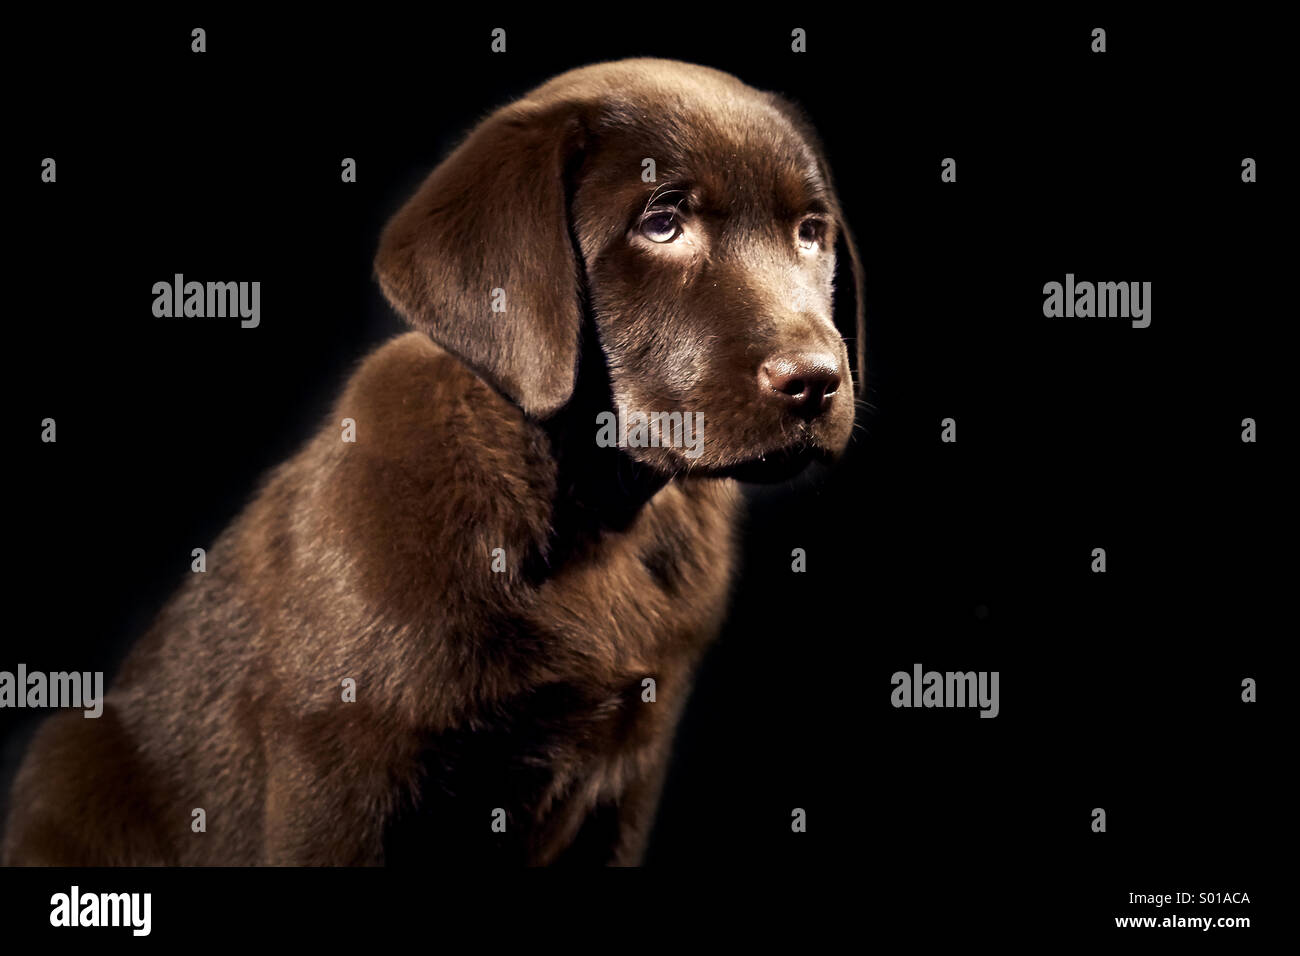 Brown Labrador puppy - Stock Image